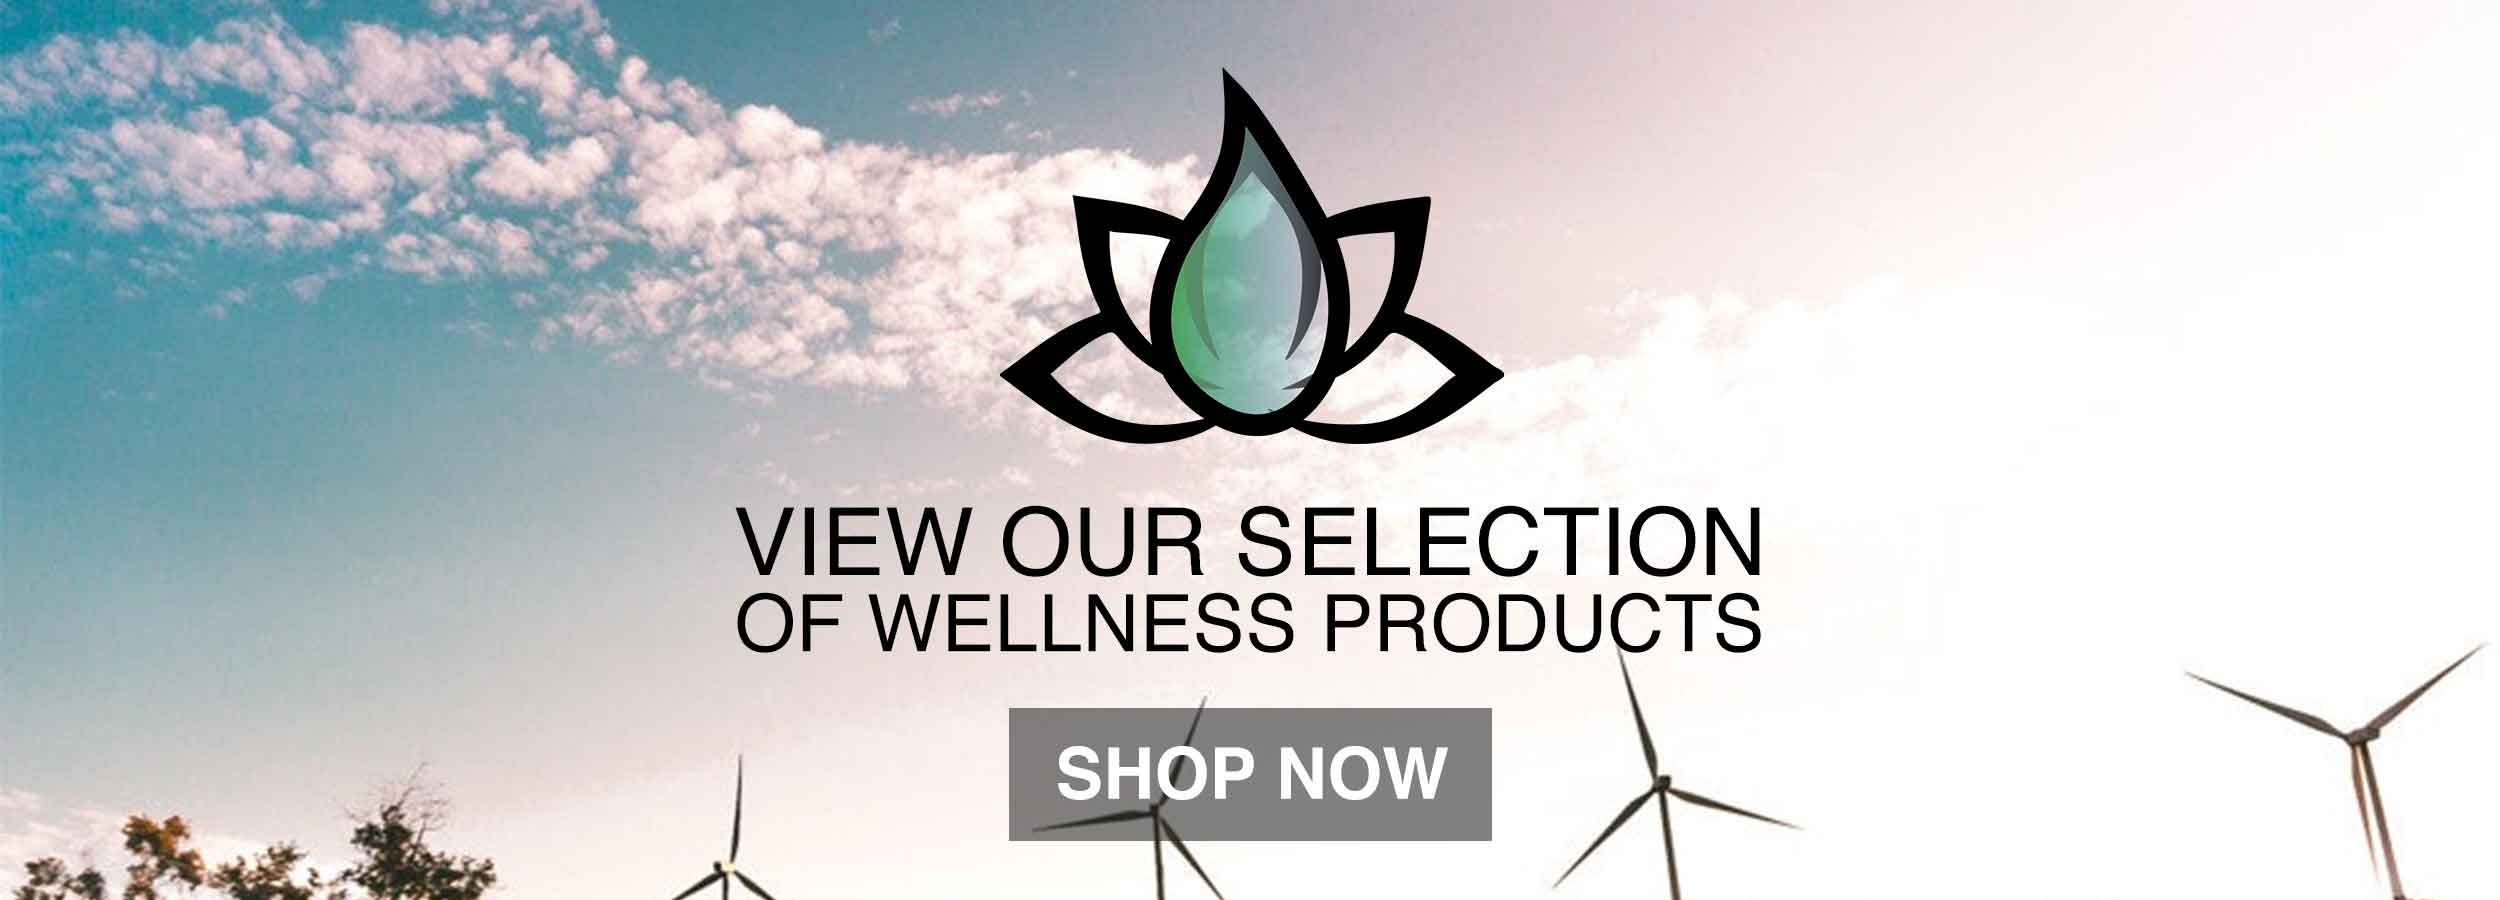 Shop for some wellness supplements